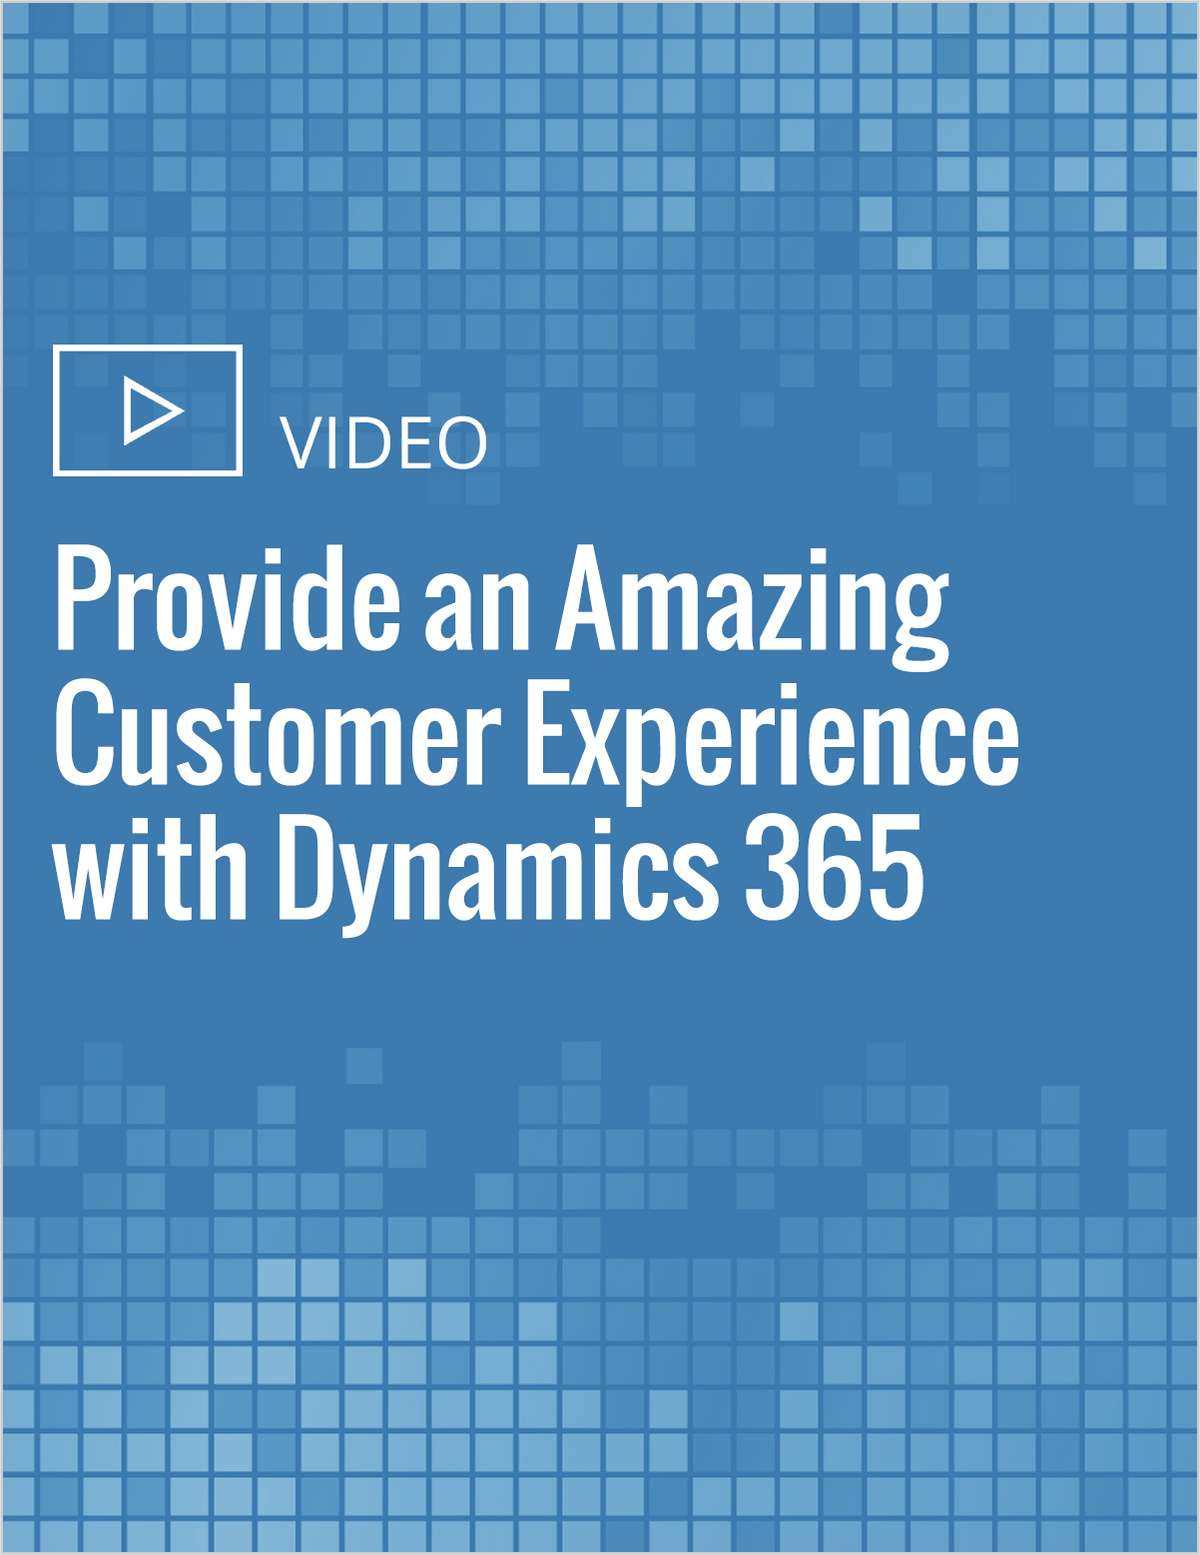 Provide an Amazing Customer Experience with Dynamics 365